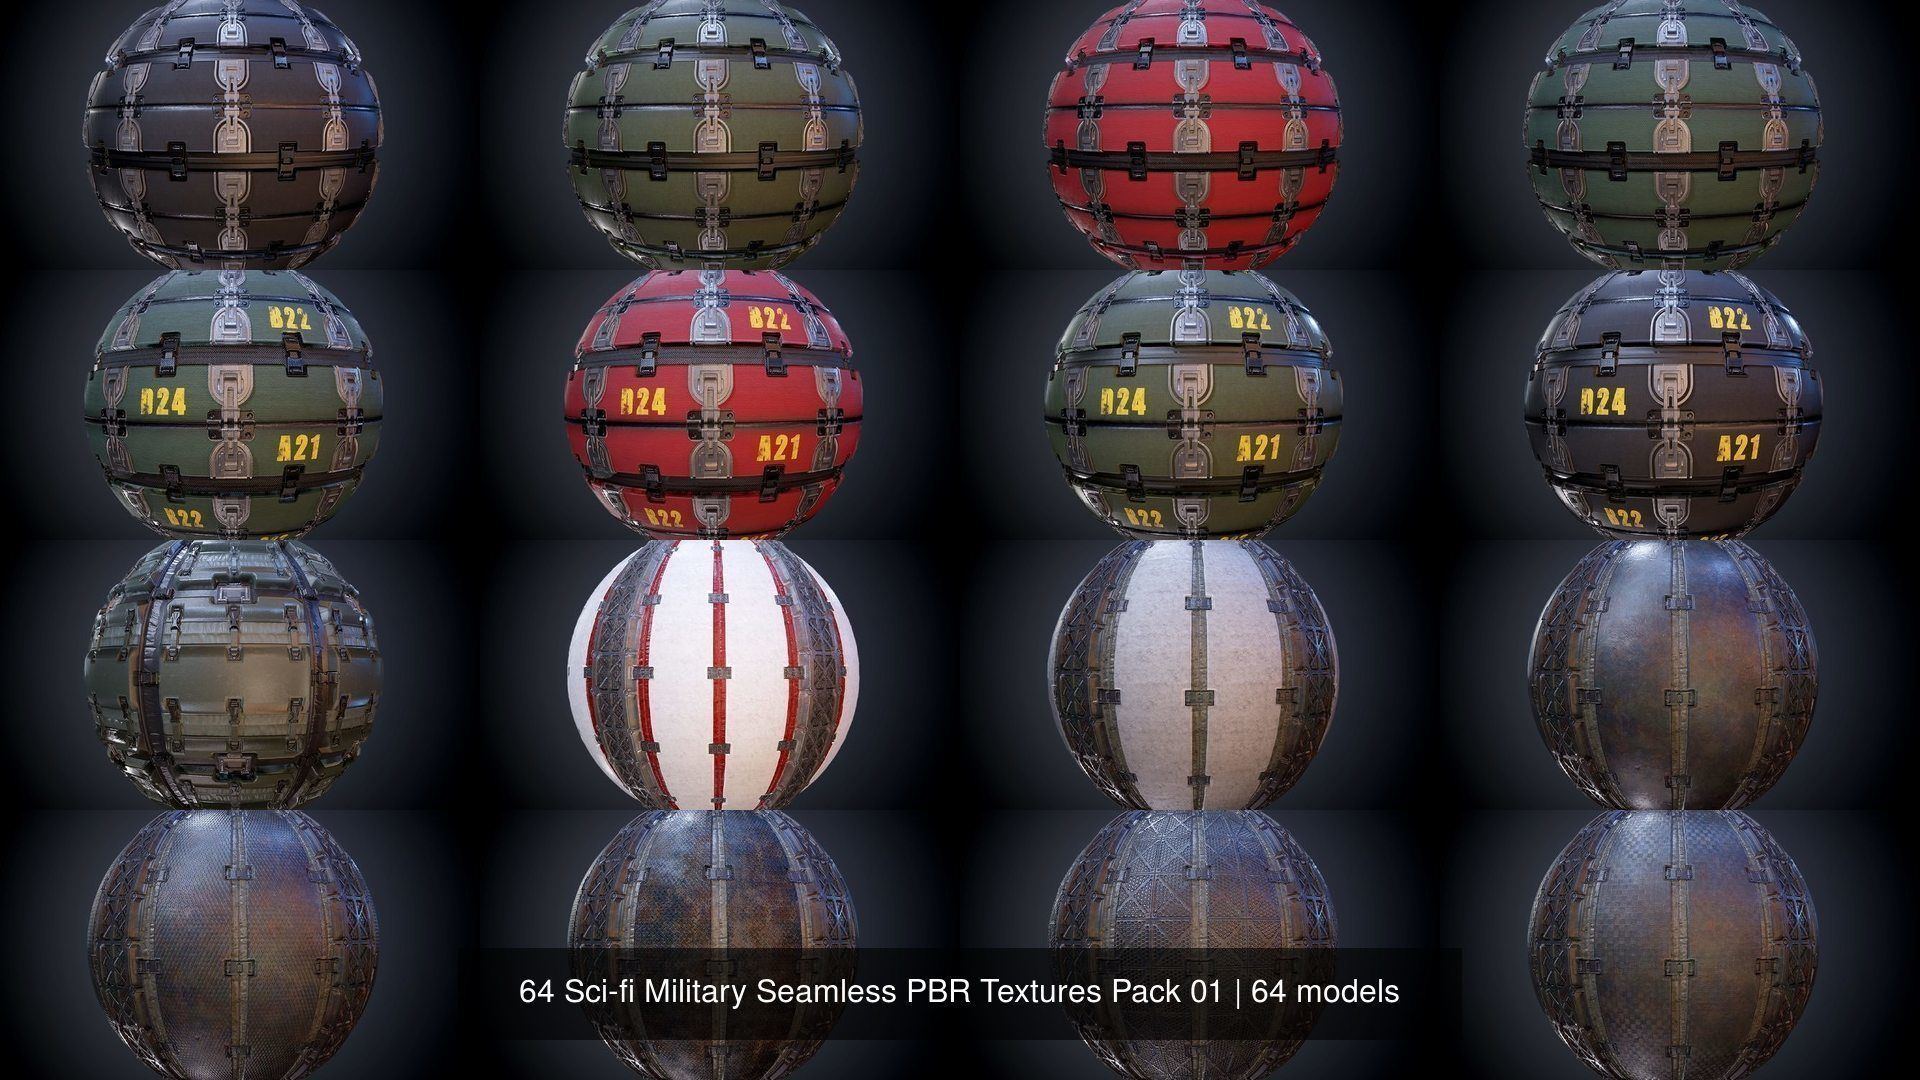 64 Sci-fi Military Seamless PBR Textures Collection 01